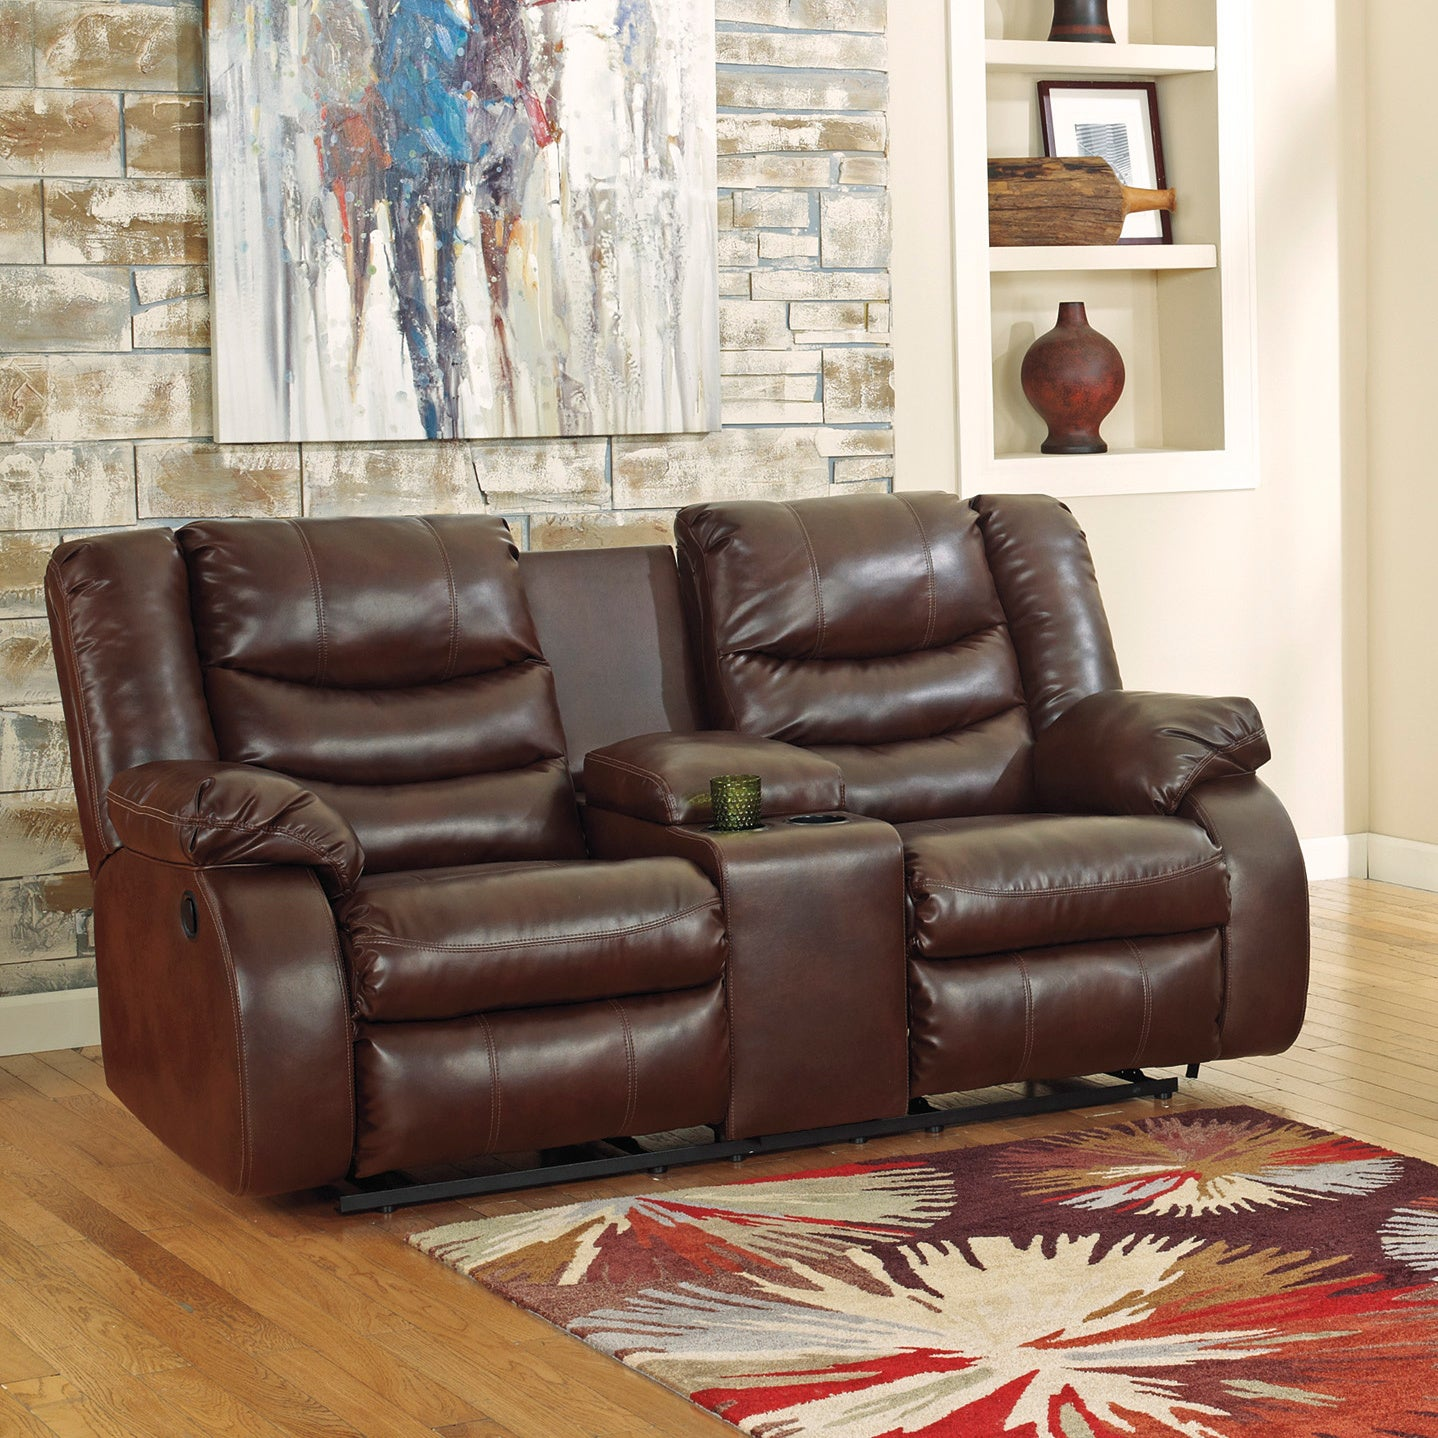 Signature Design by Ashley Double Reclining Power Loveseat with Console at Sears.com